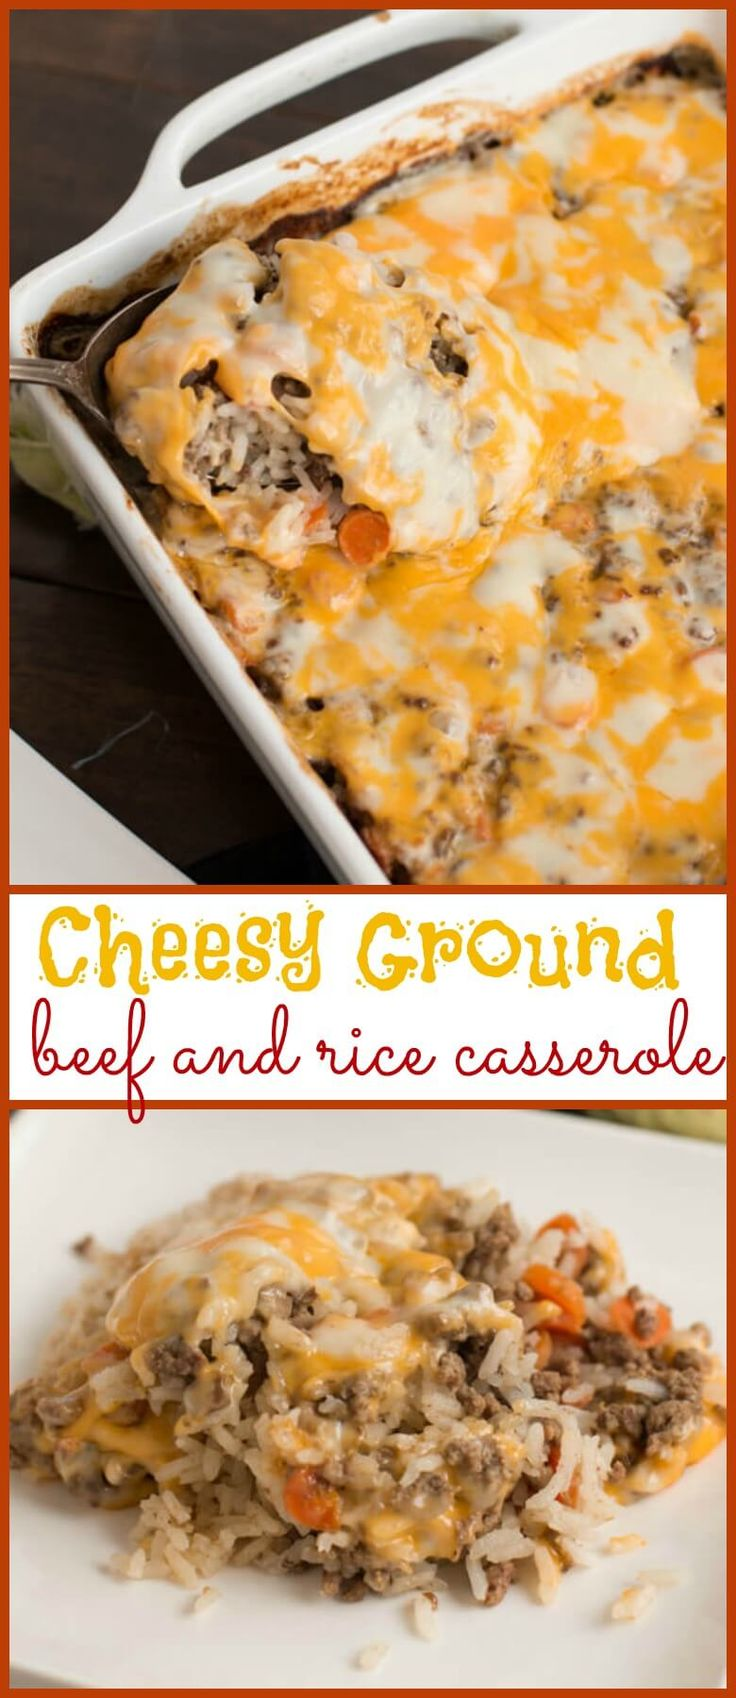 Cheesy Ground Beef and Rice Casserole via @ohsweetbasil